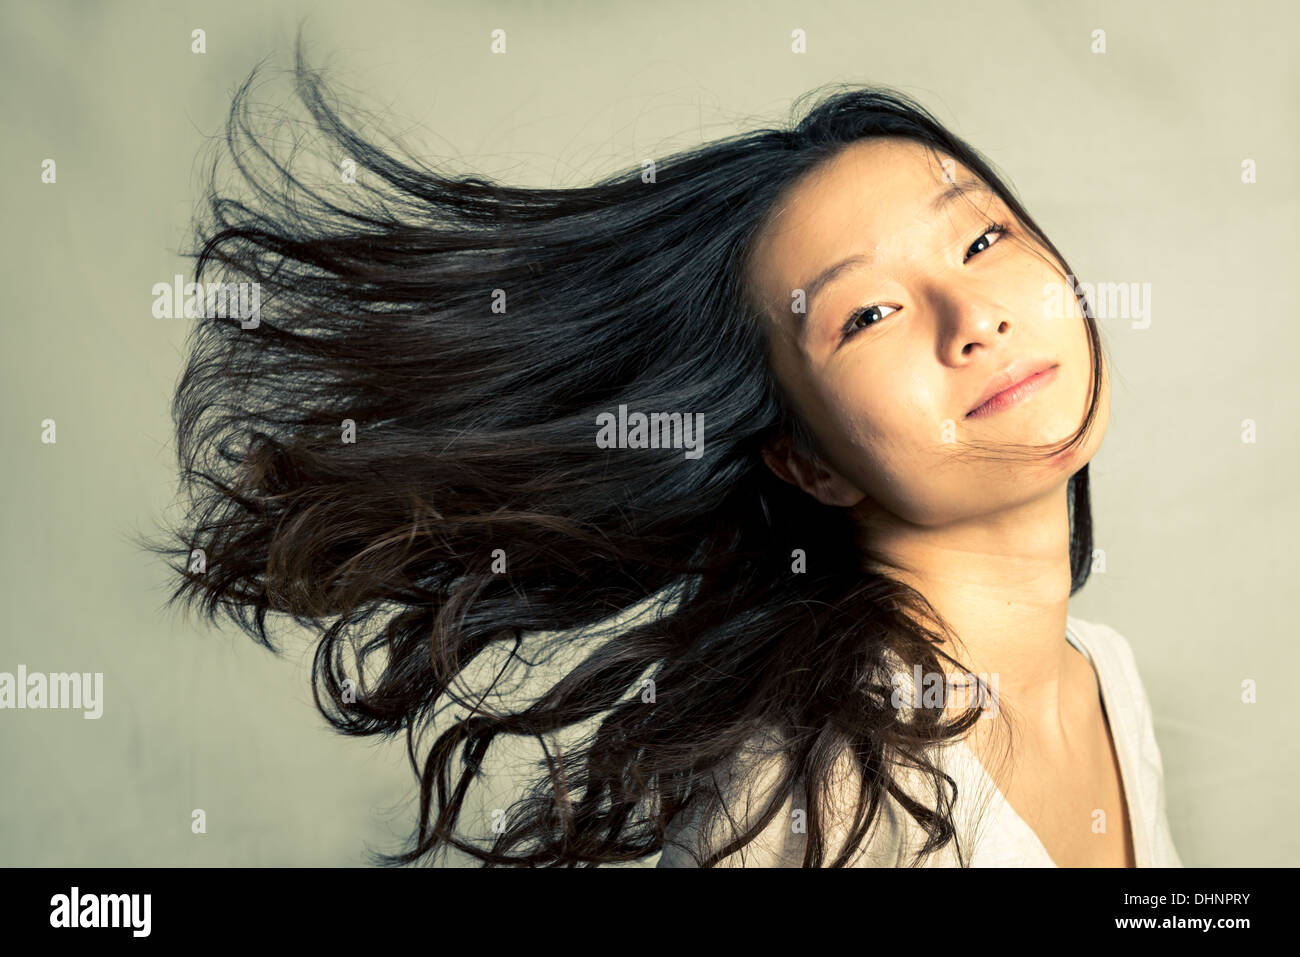 Young woman flicking her hair and posing, with fashion tone and background - Stock Image